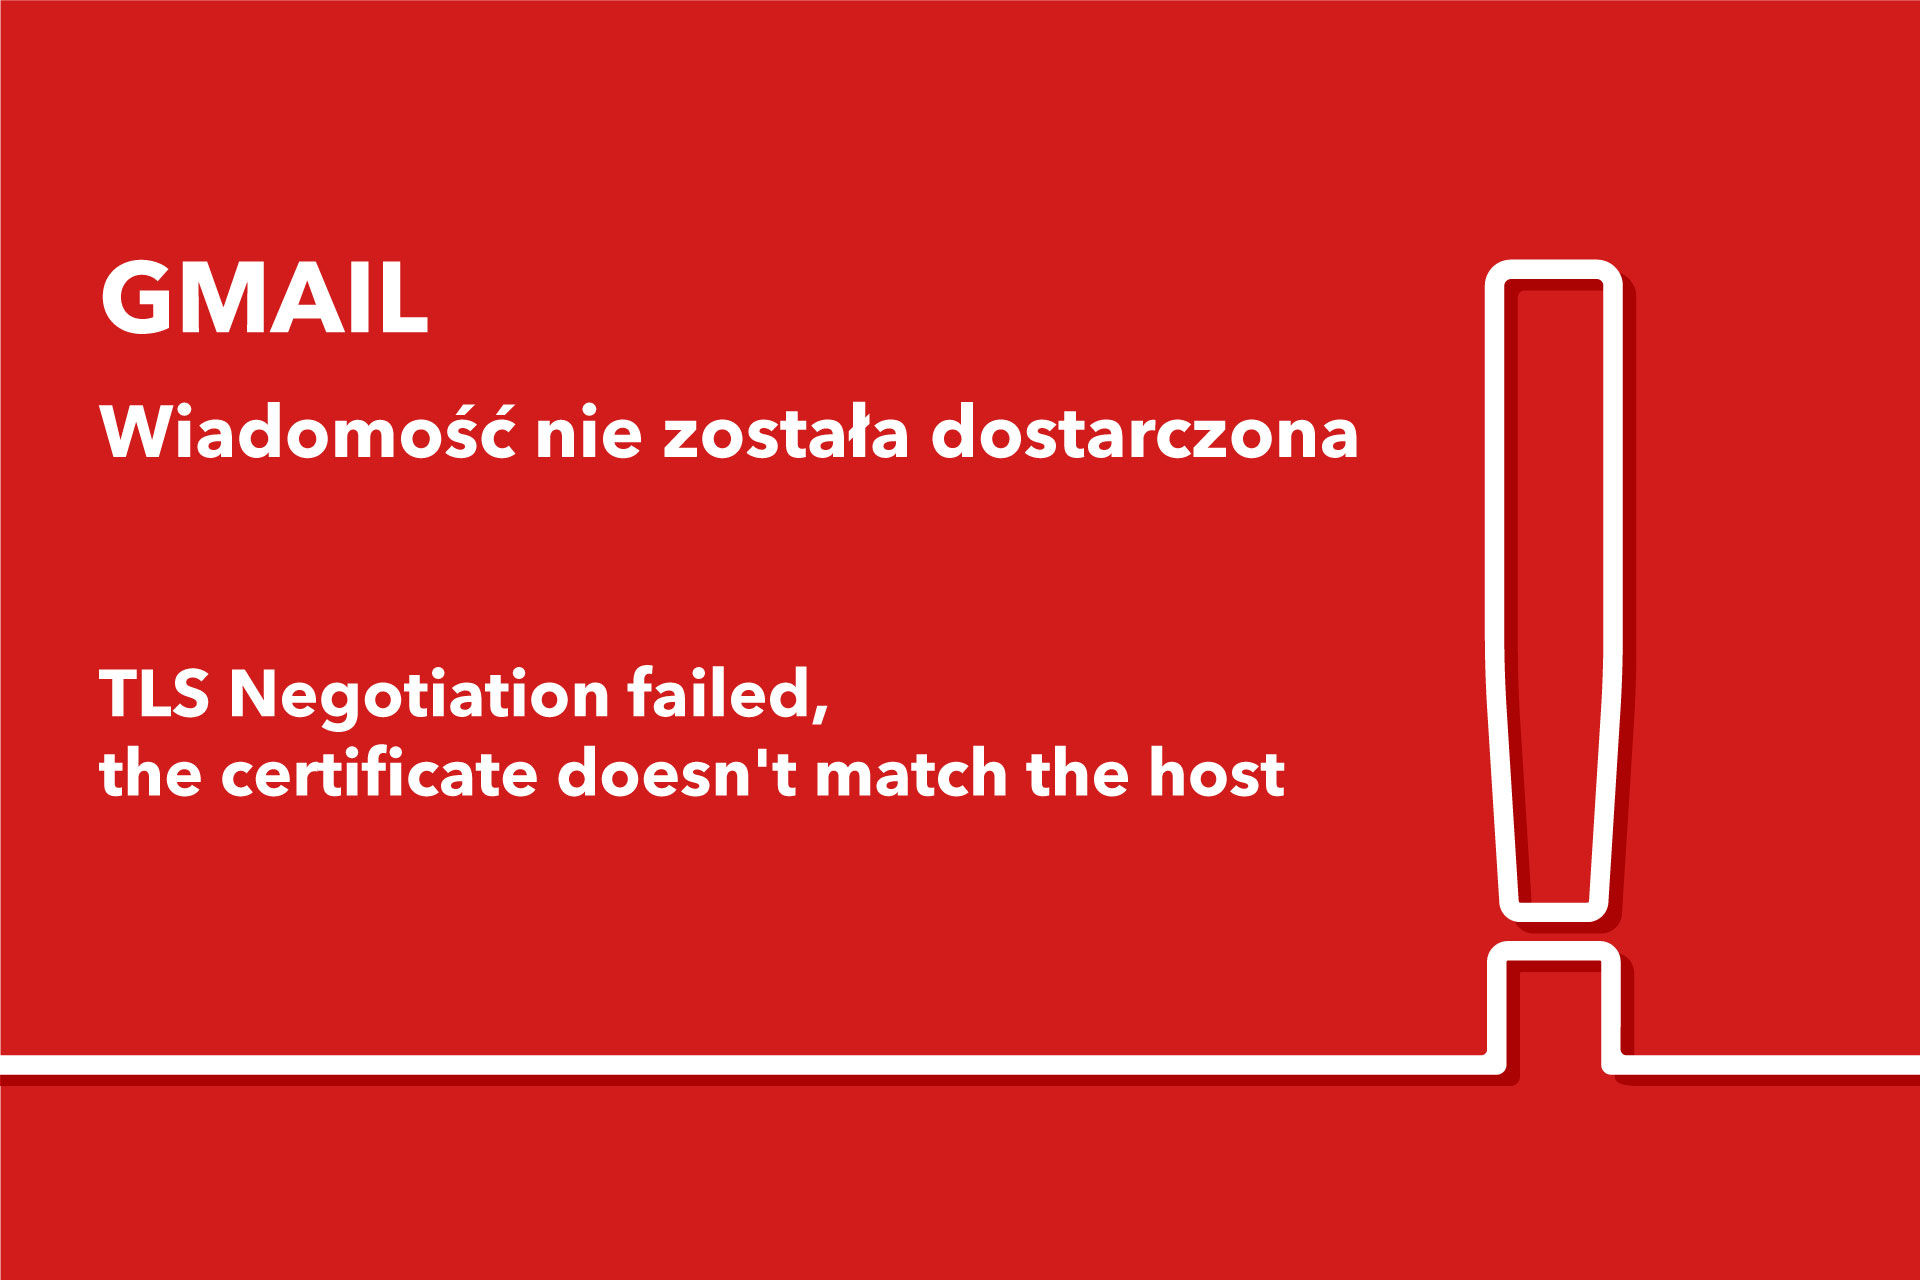 Wiadomość nie została dostarczona TLS Negotiation failed, the certificate doesn't match the host